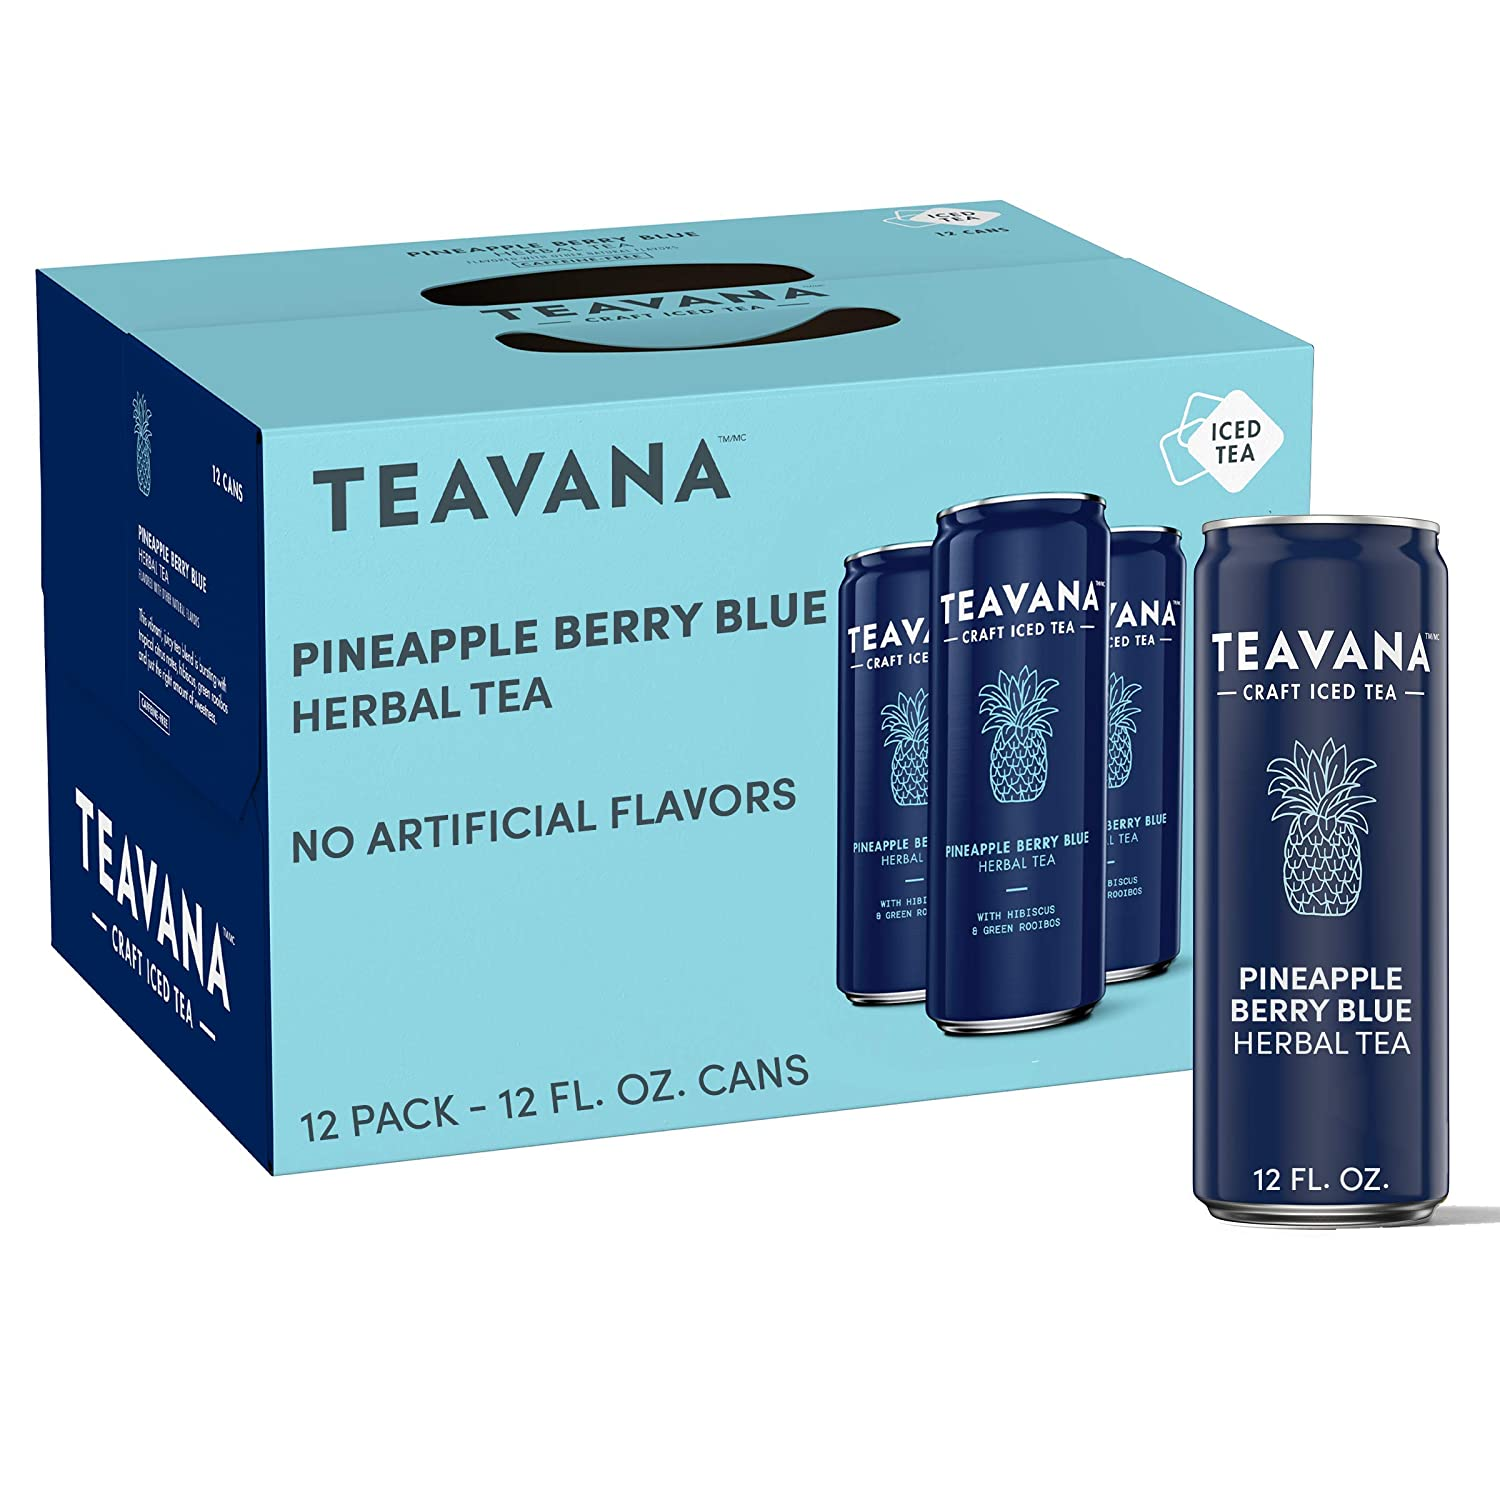 Teavana Craft Pineapple Berry Blue Iced Natural Herbal Tea with Blueberry, Hibiscus Flavor 12 Fl. Oz. Cans (Pack of 12)